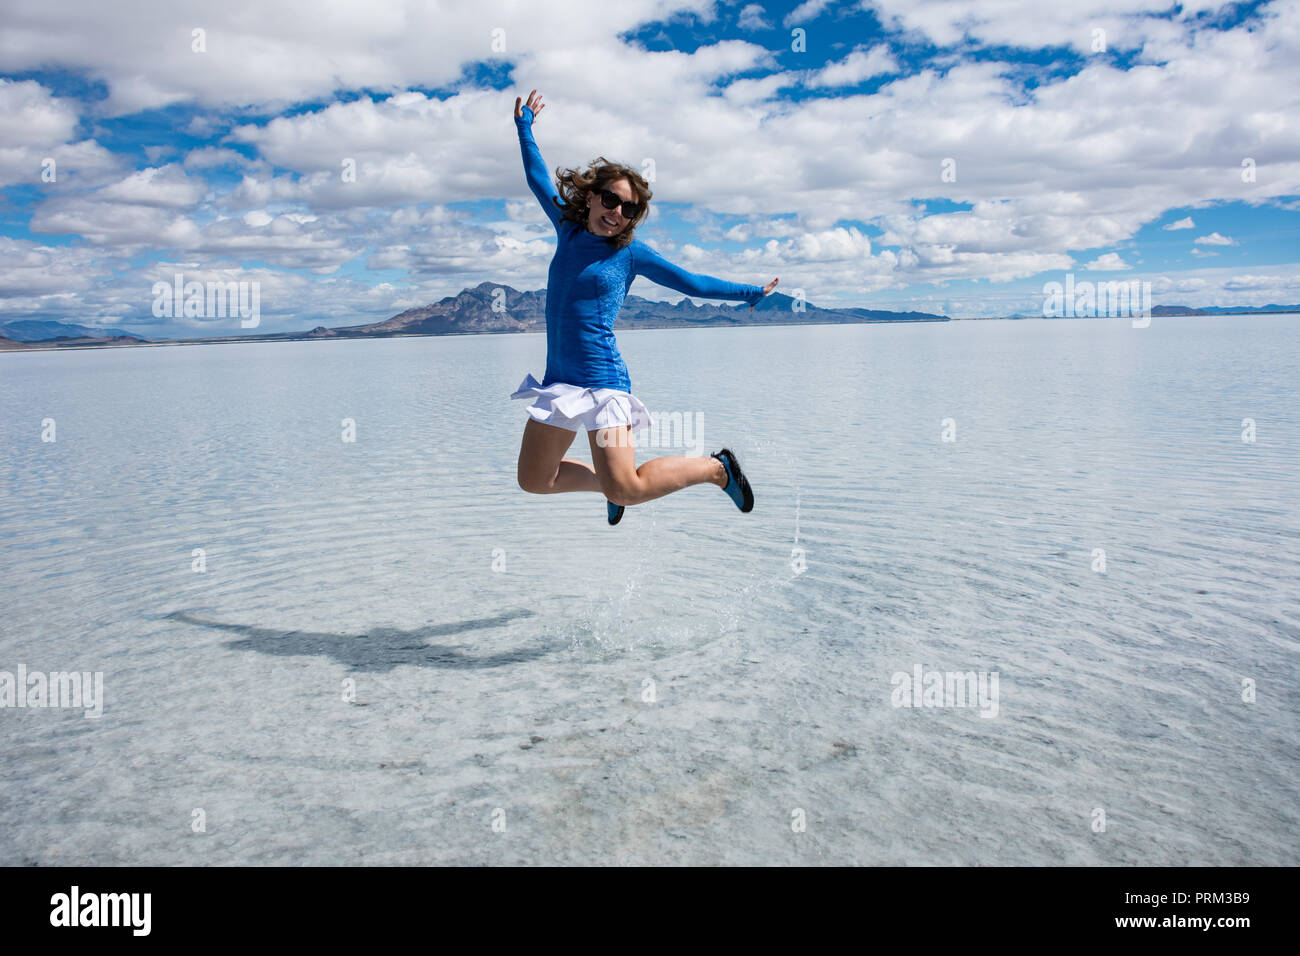 A woman jumps at the Bonneville Salt flats when the salt flats are flooded in the spring. Stock Photo